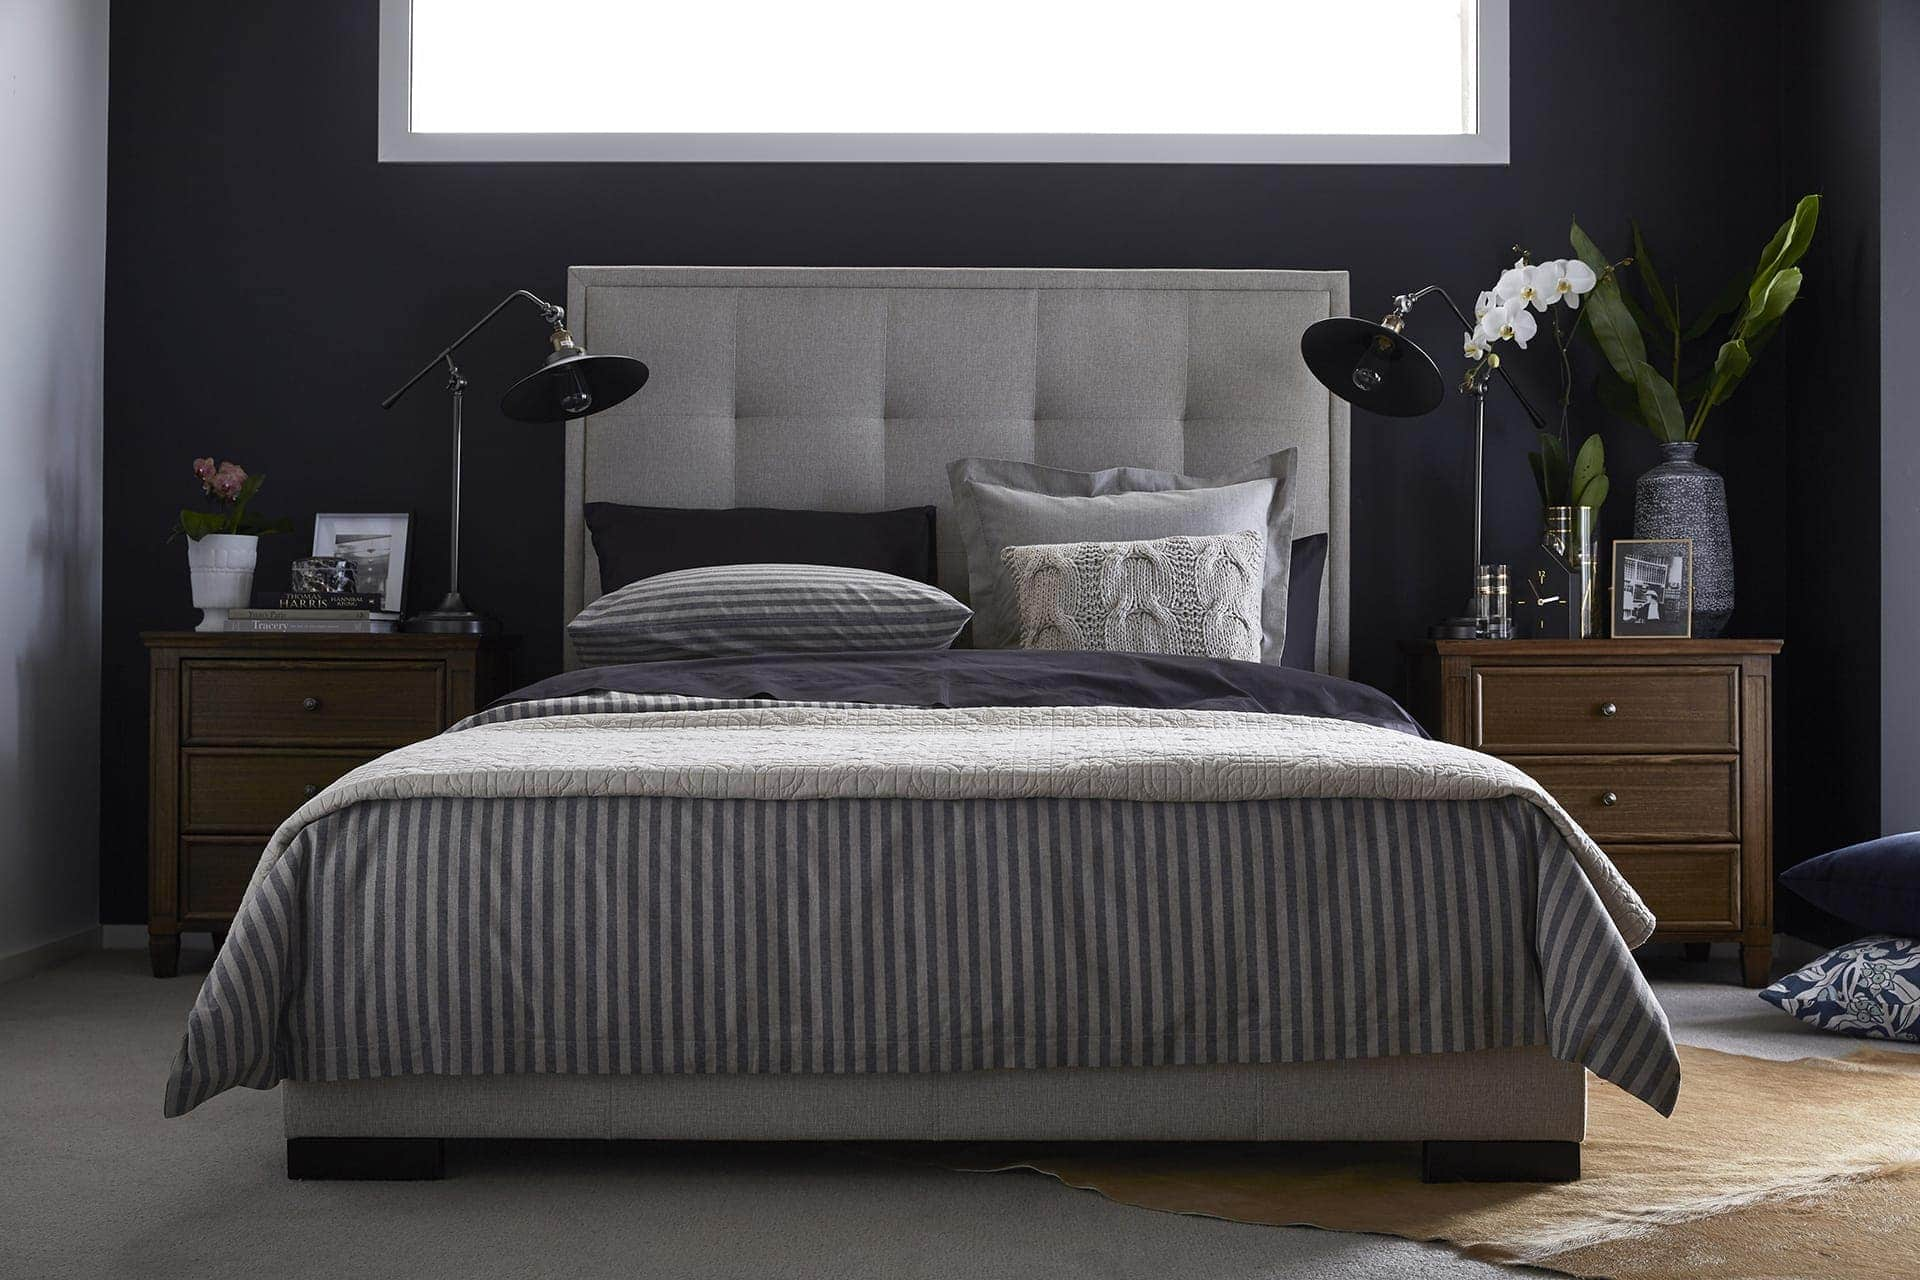 dark master bedroom with grey upholstered headboard